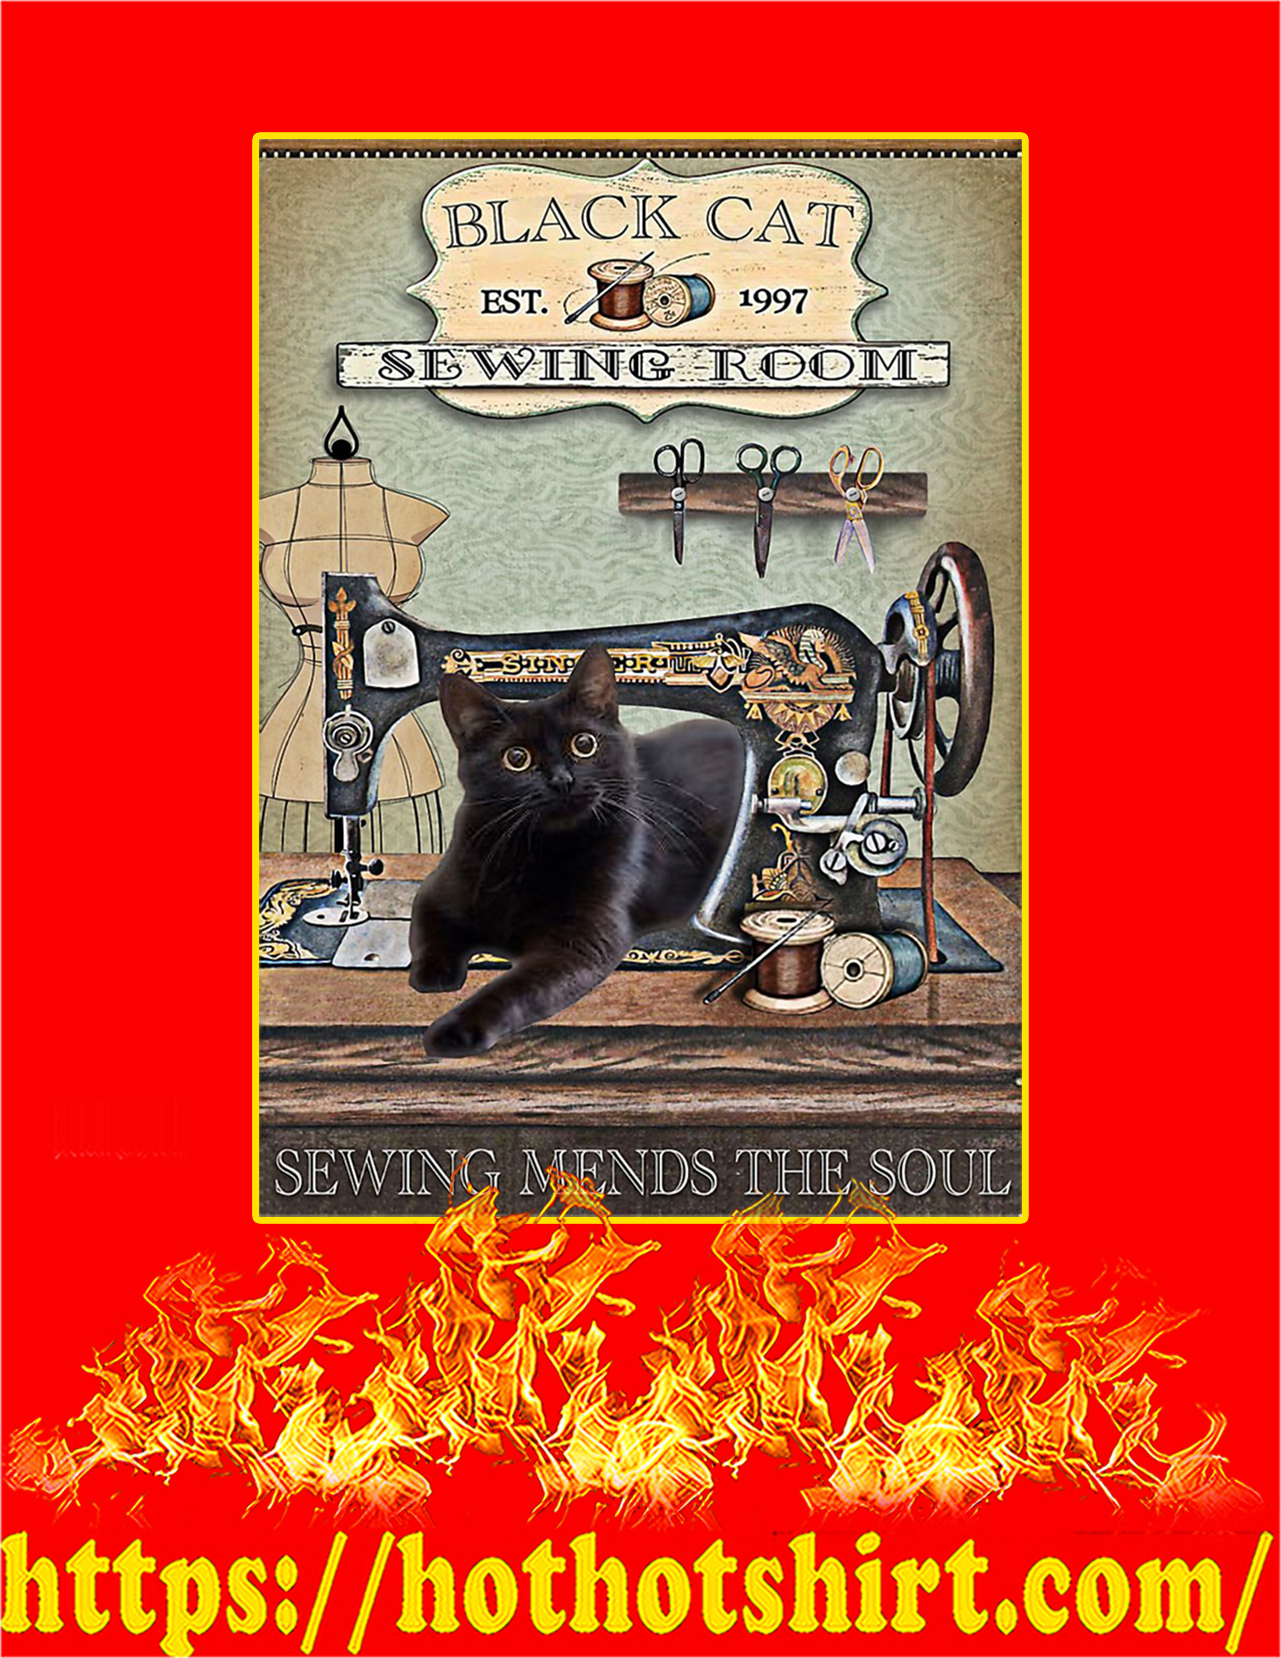 Black Cat Sewing Room Sewing Mends The Soul Poster - A3